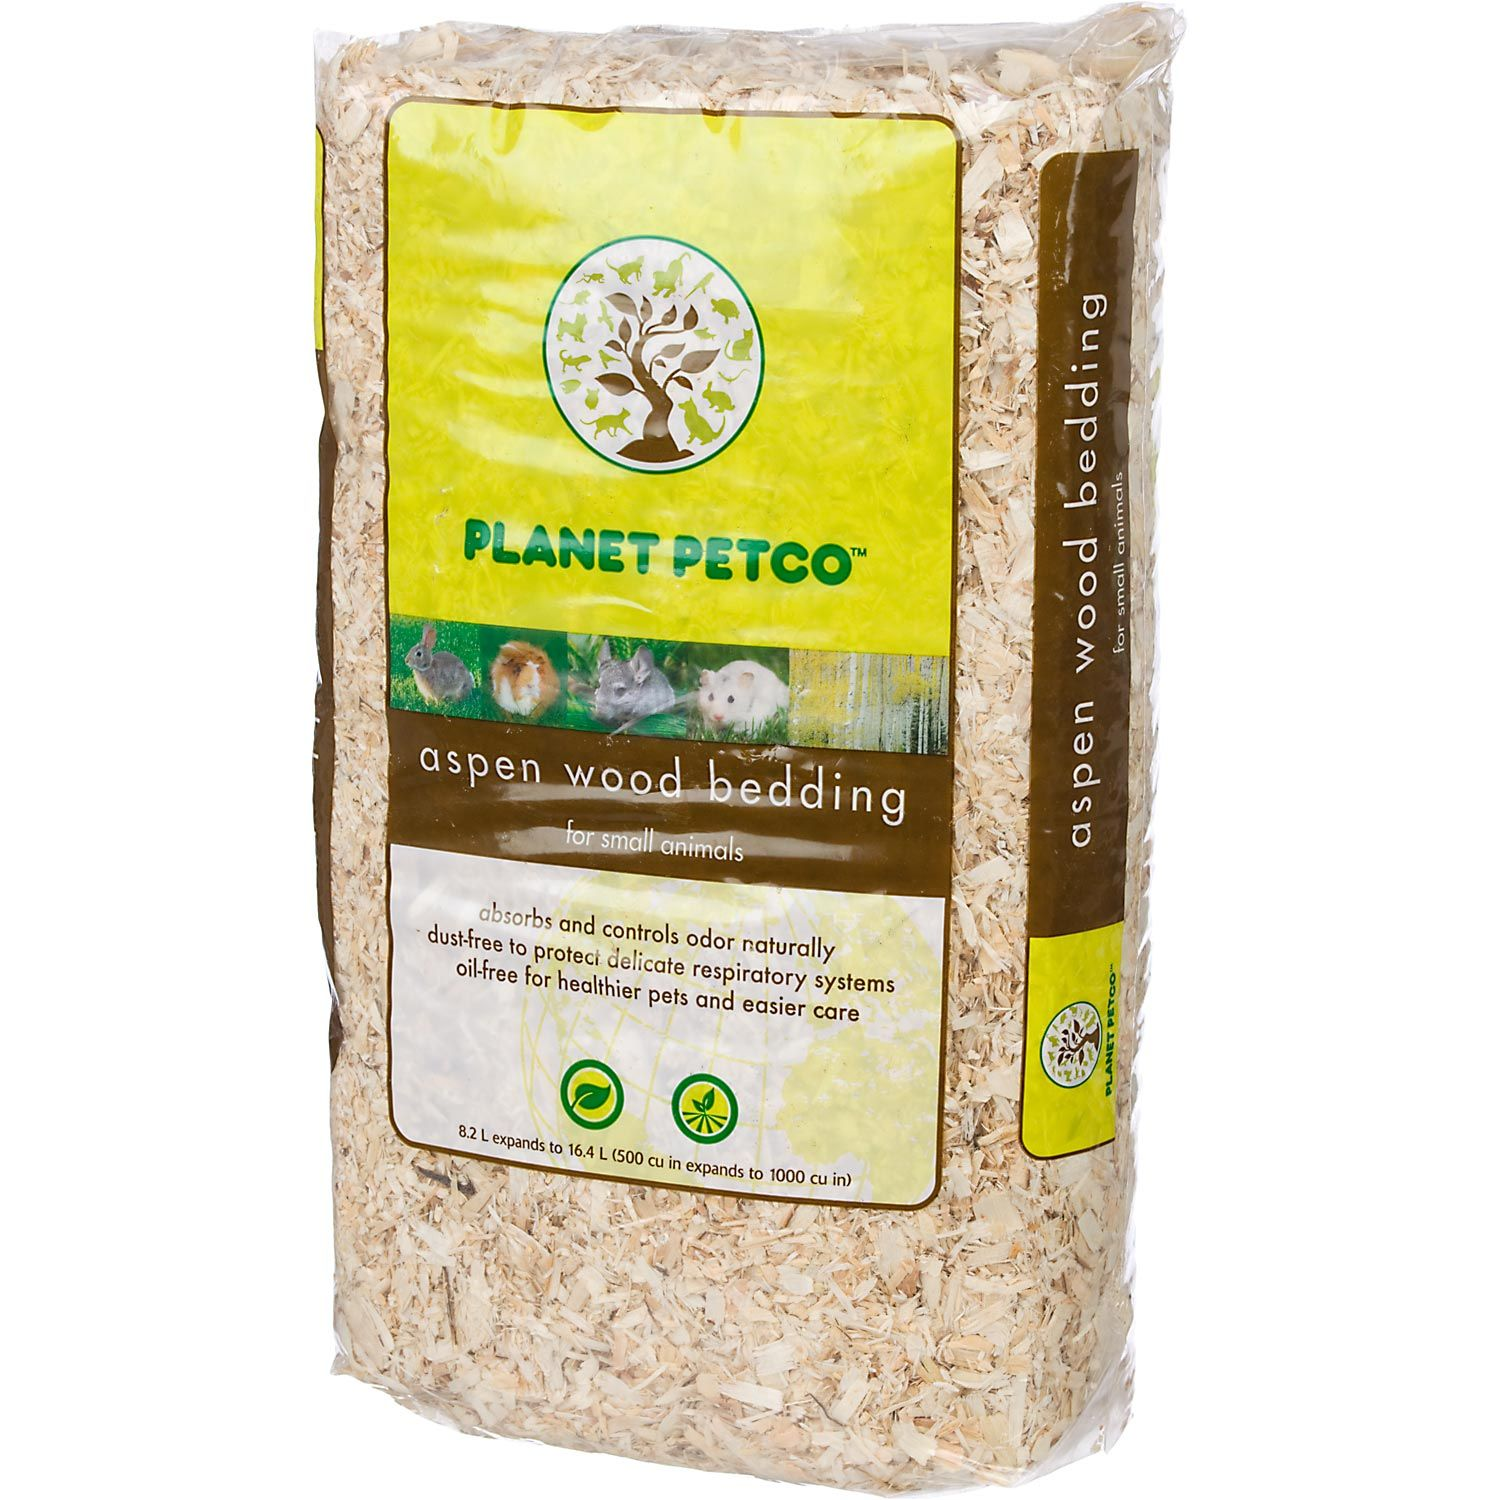 Petco Aspen Wood Bedding for Small Animals Small